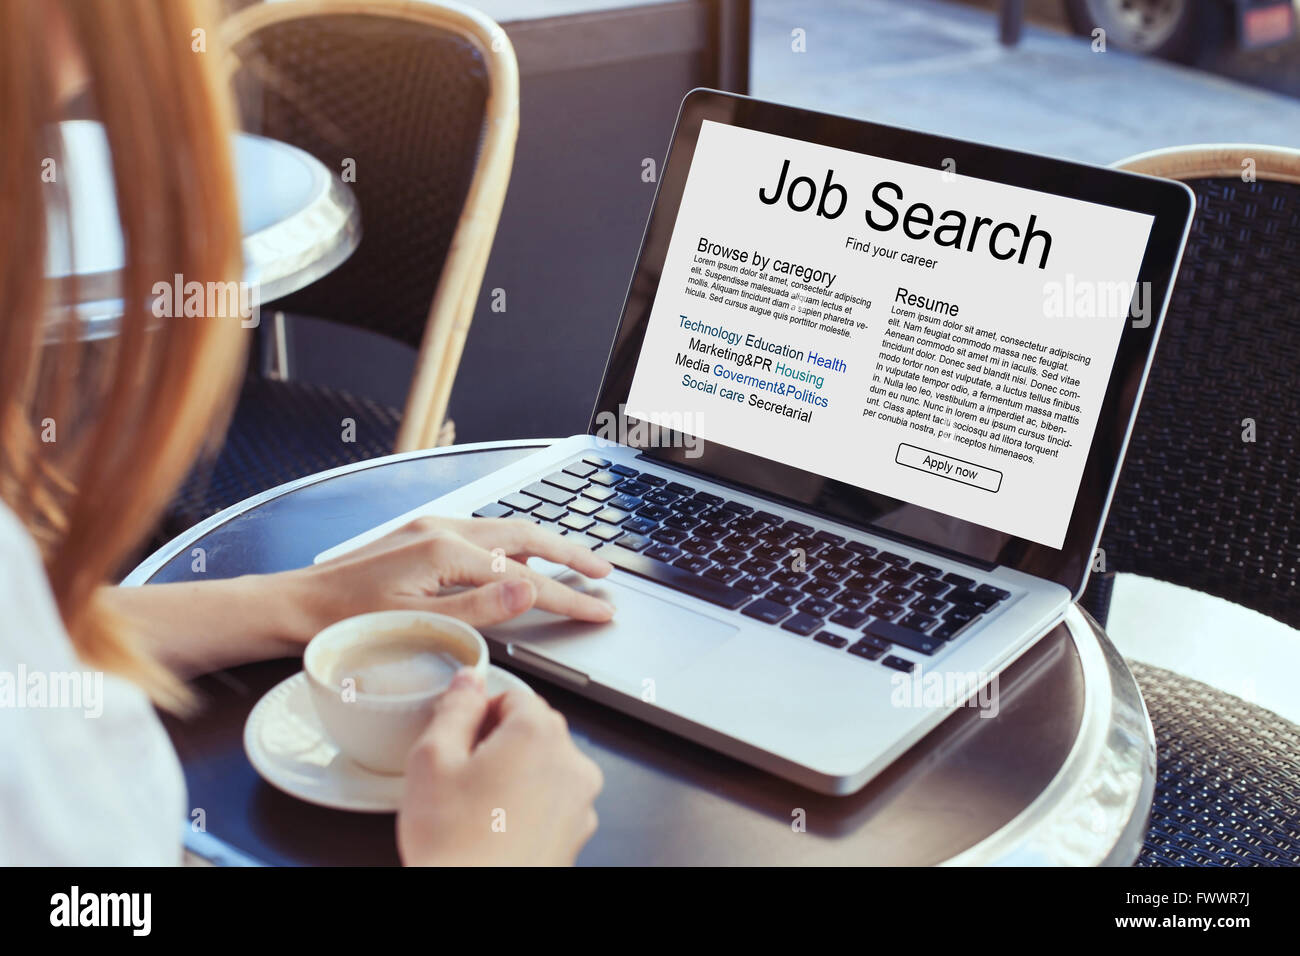 job search concept, find your career, online website - Stock Image